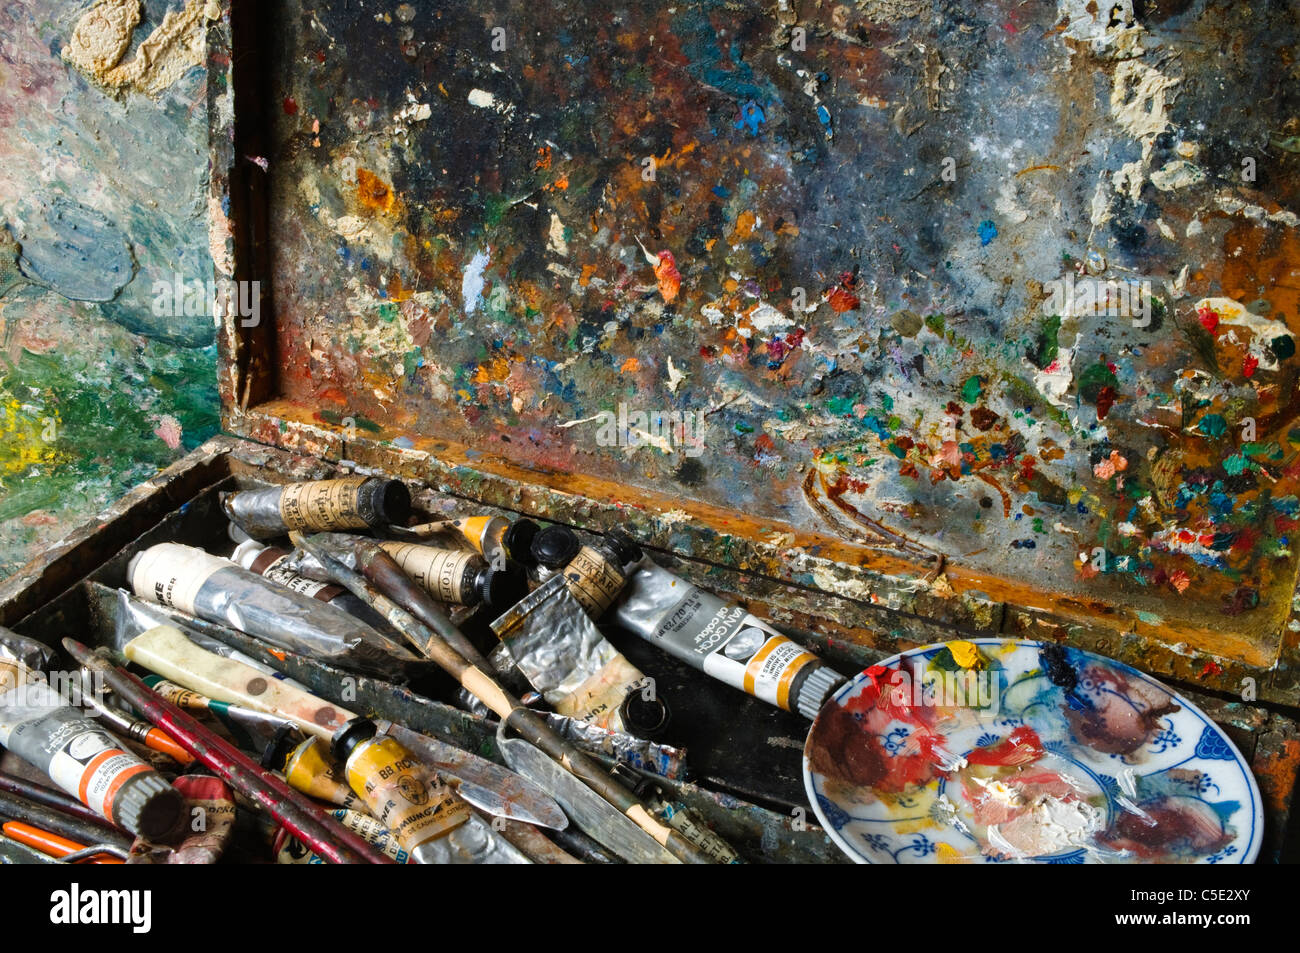 Close-up of an artist's palette and paint box - Stock Image